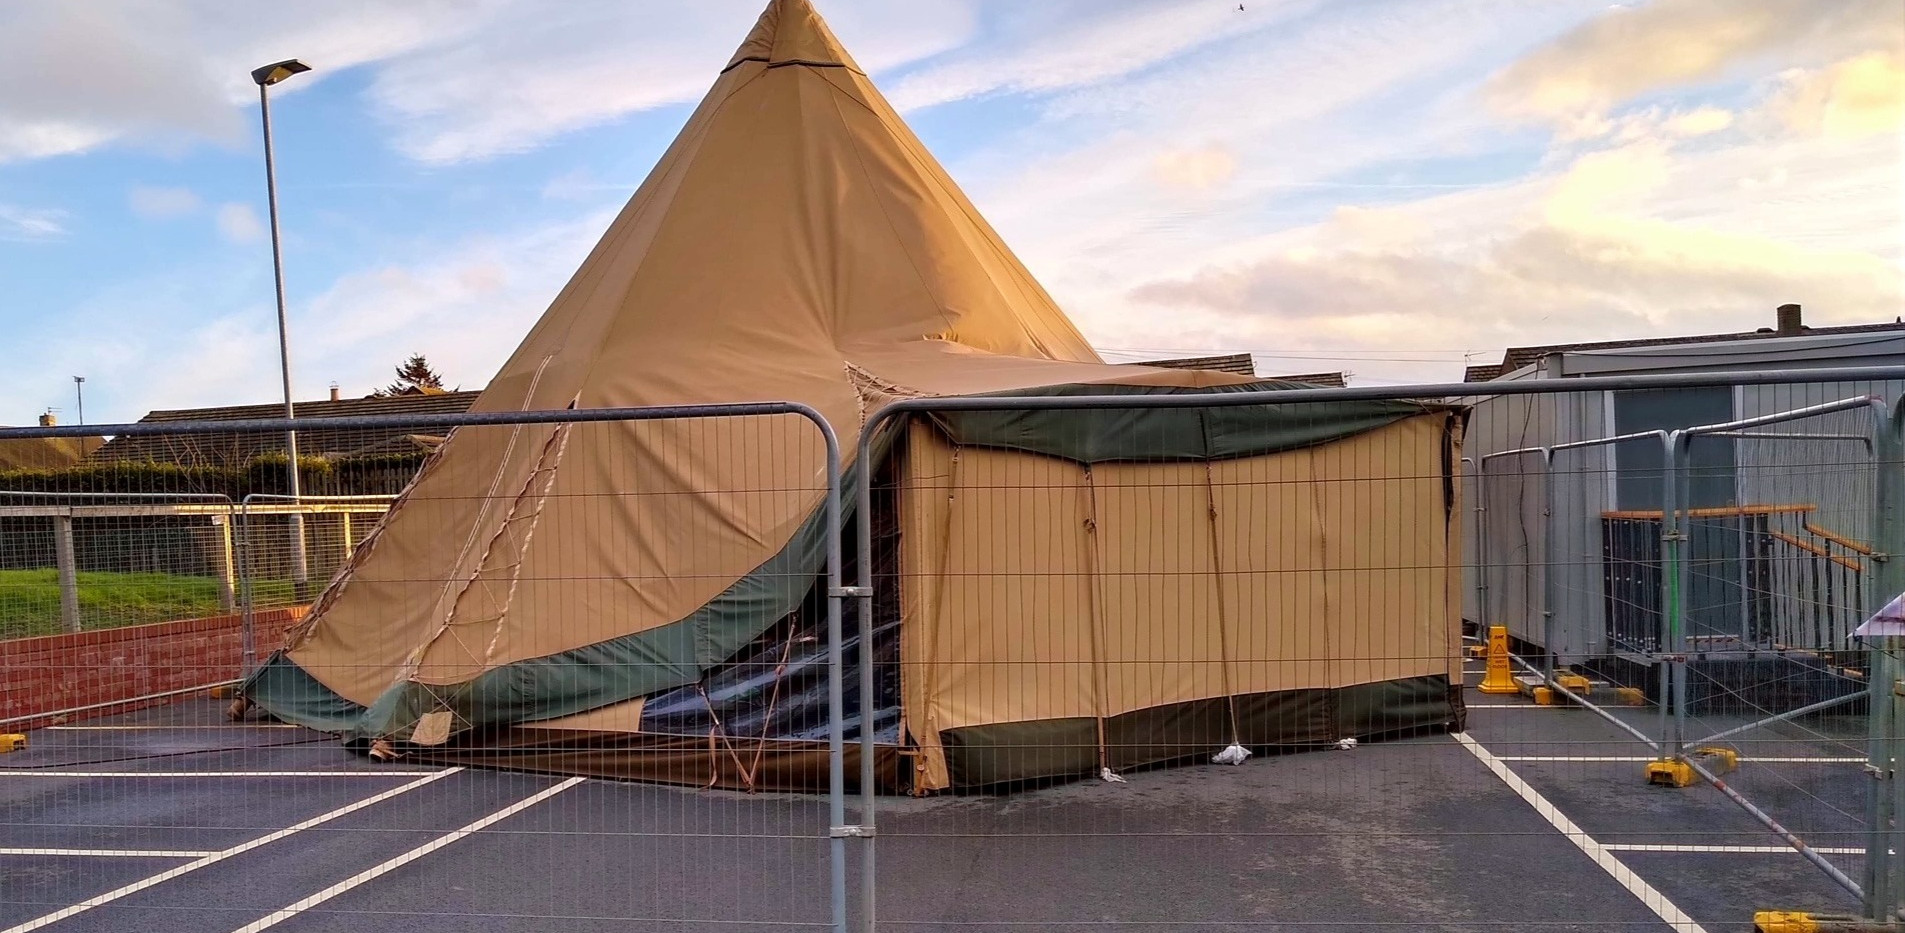 tipi teepee temporary structure Covid19